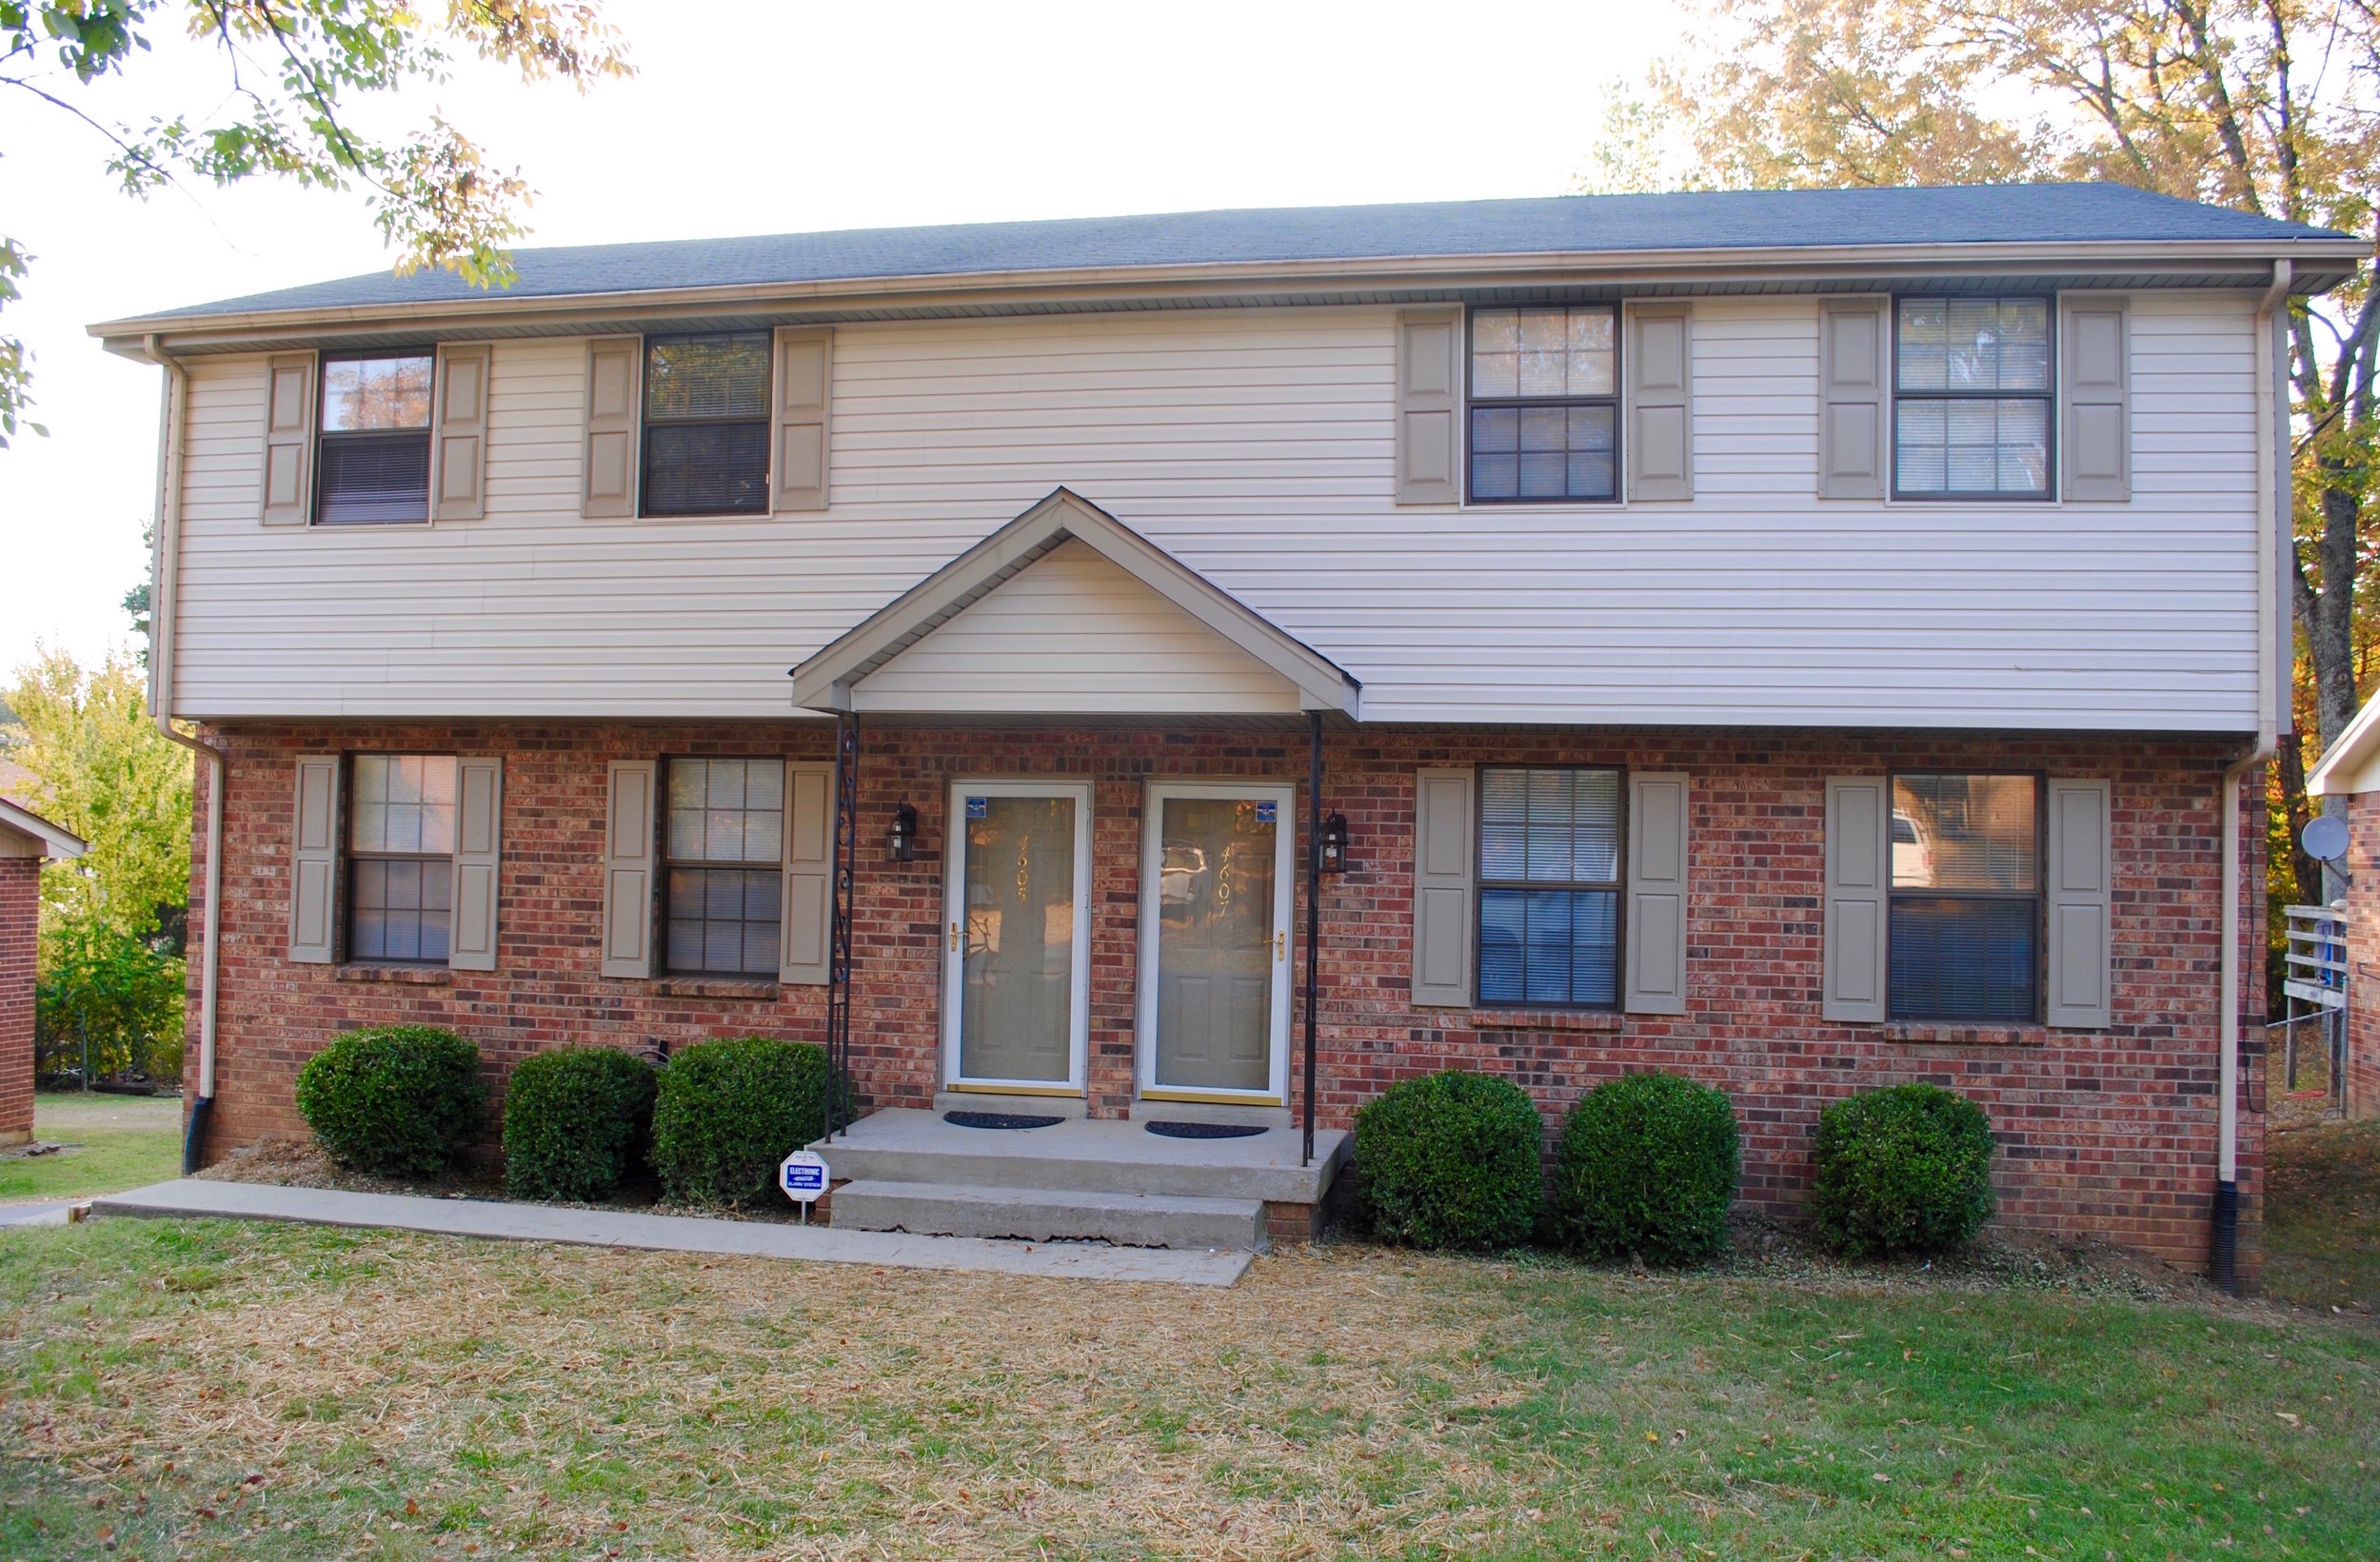 4605 AVAIL Sept 15 / 4607 RENTED HERMITAGE: 4605/07 Forest Ridge Duplex: 3Br 1.5Ba